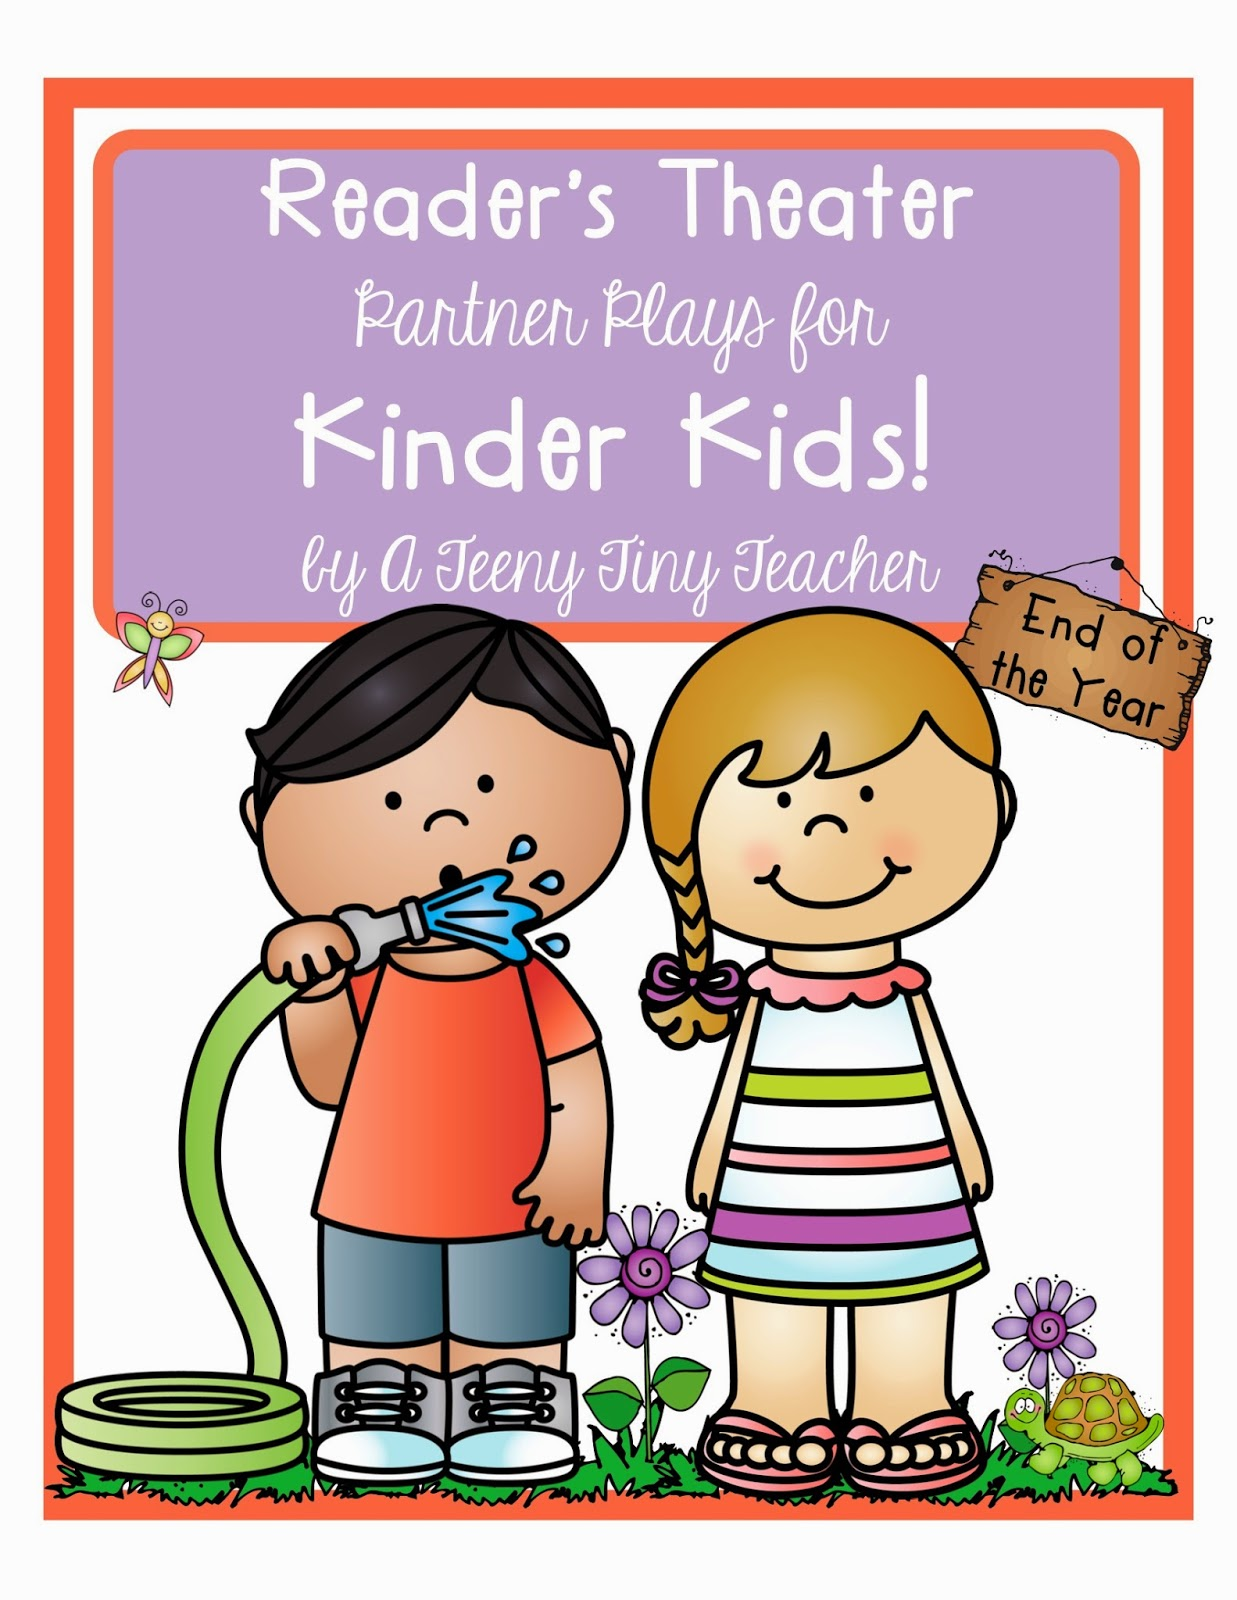 Reader's Theater {End of the Year}